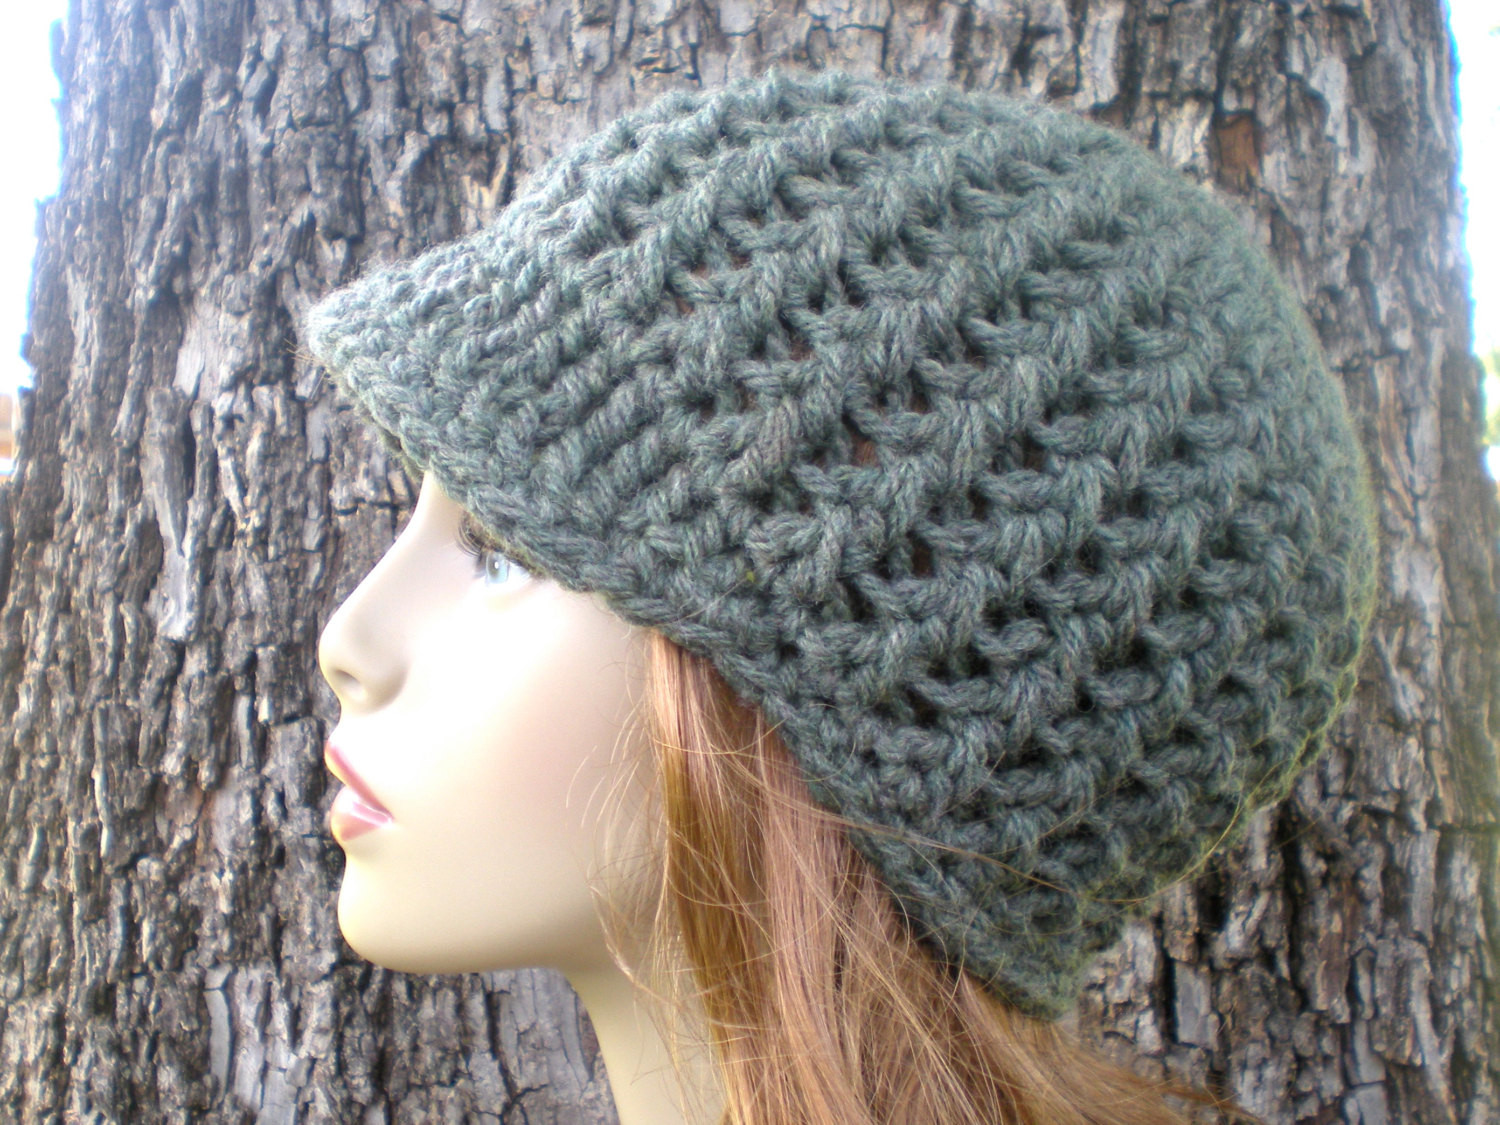 Chunky Yarn Crochet Patterns Inspirational Pattern Amsterdam Hat Easy Crochet Pdf Adult Teen Newsboy Of Amazing 46 Photos Chunky Yarn Crochet Patterns